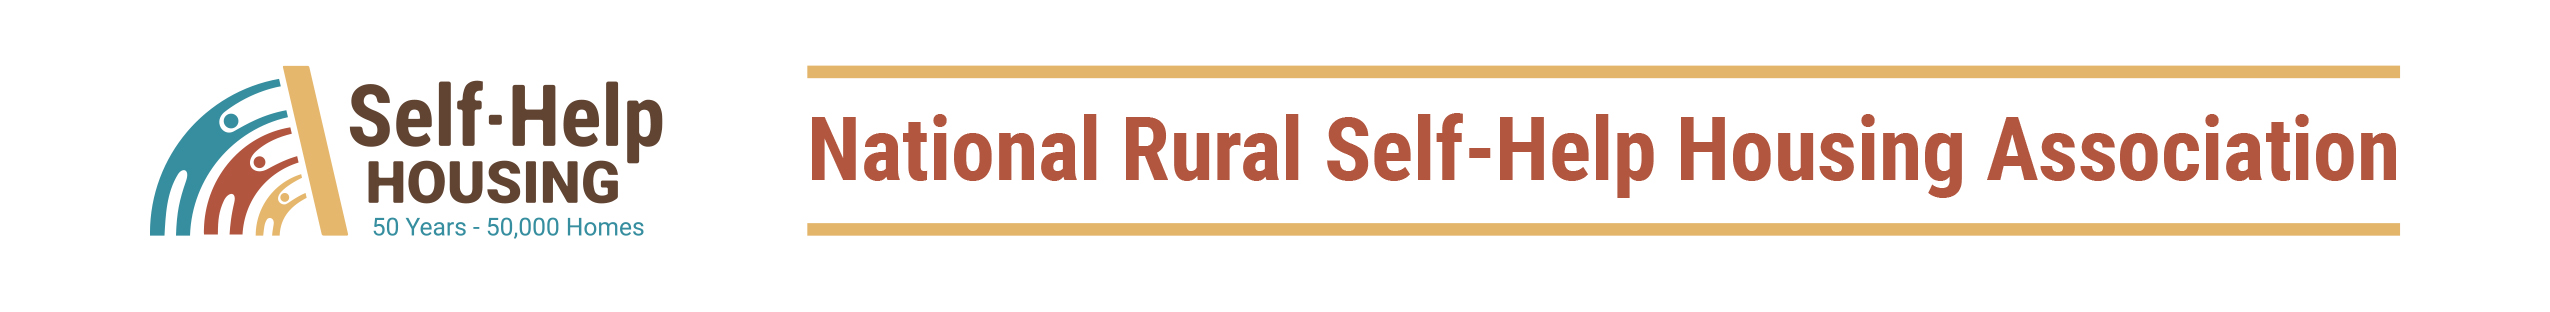 National Rural Self-Help Housing Association